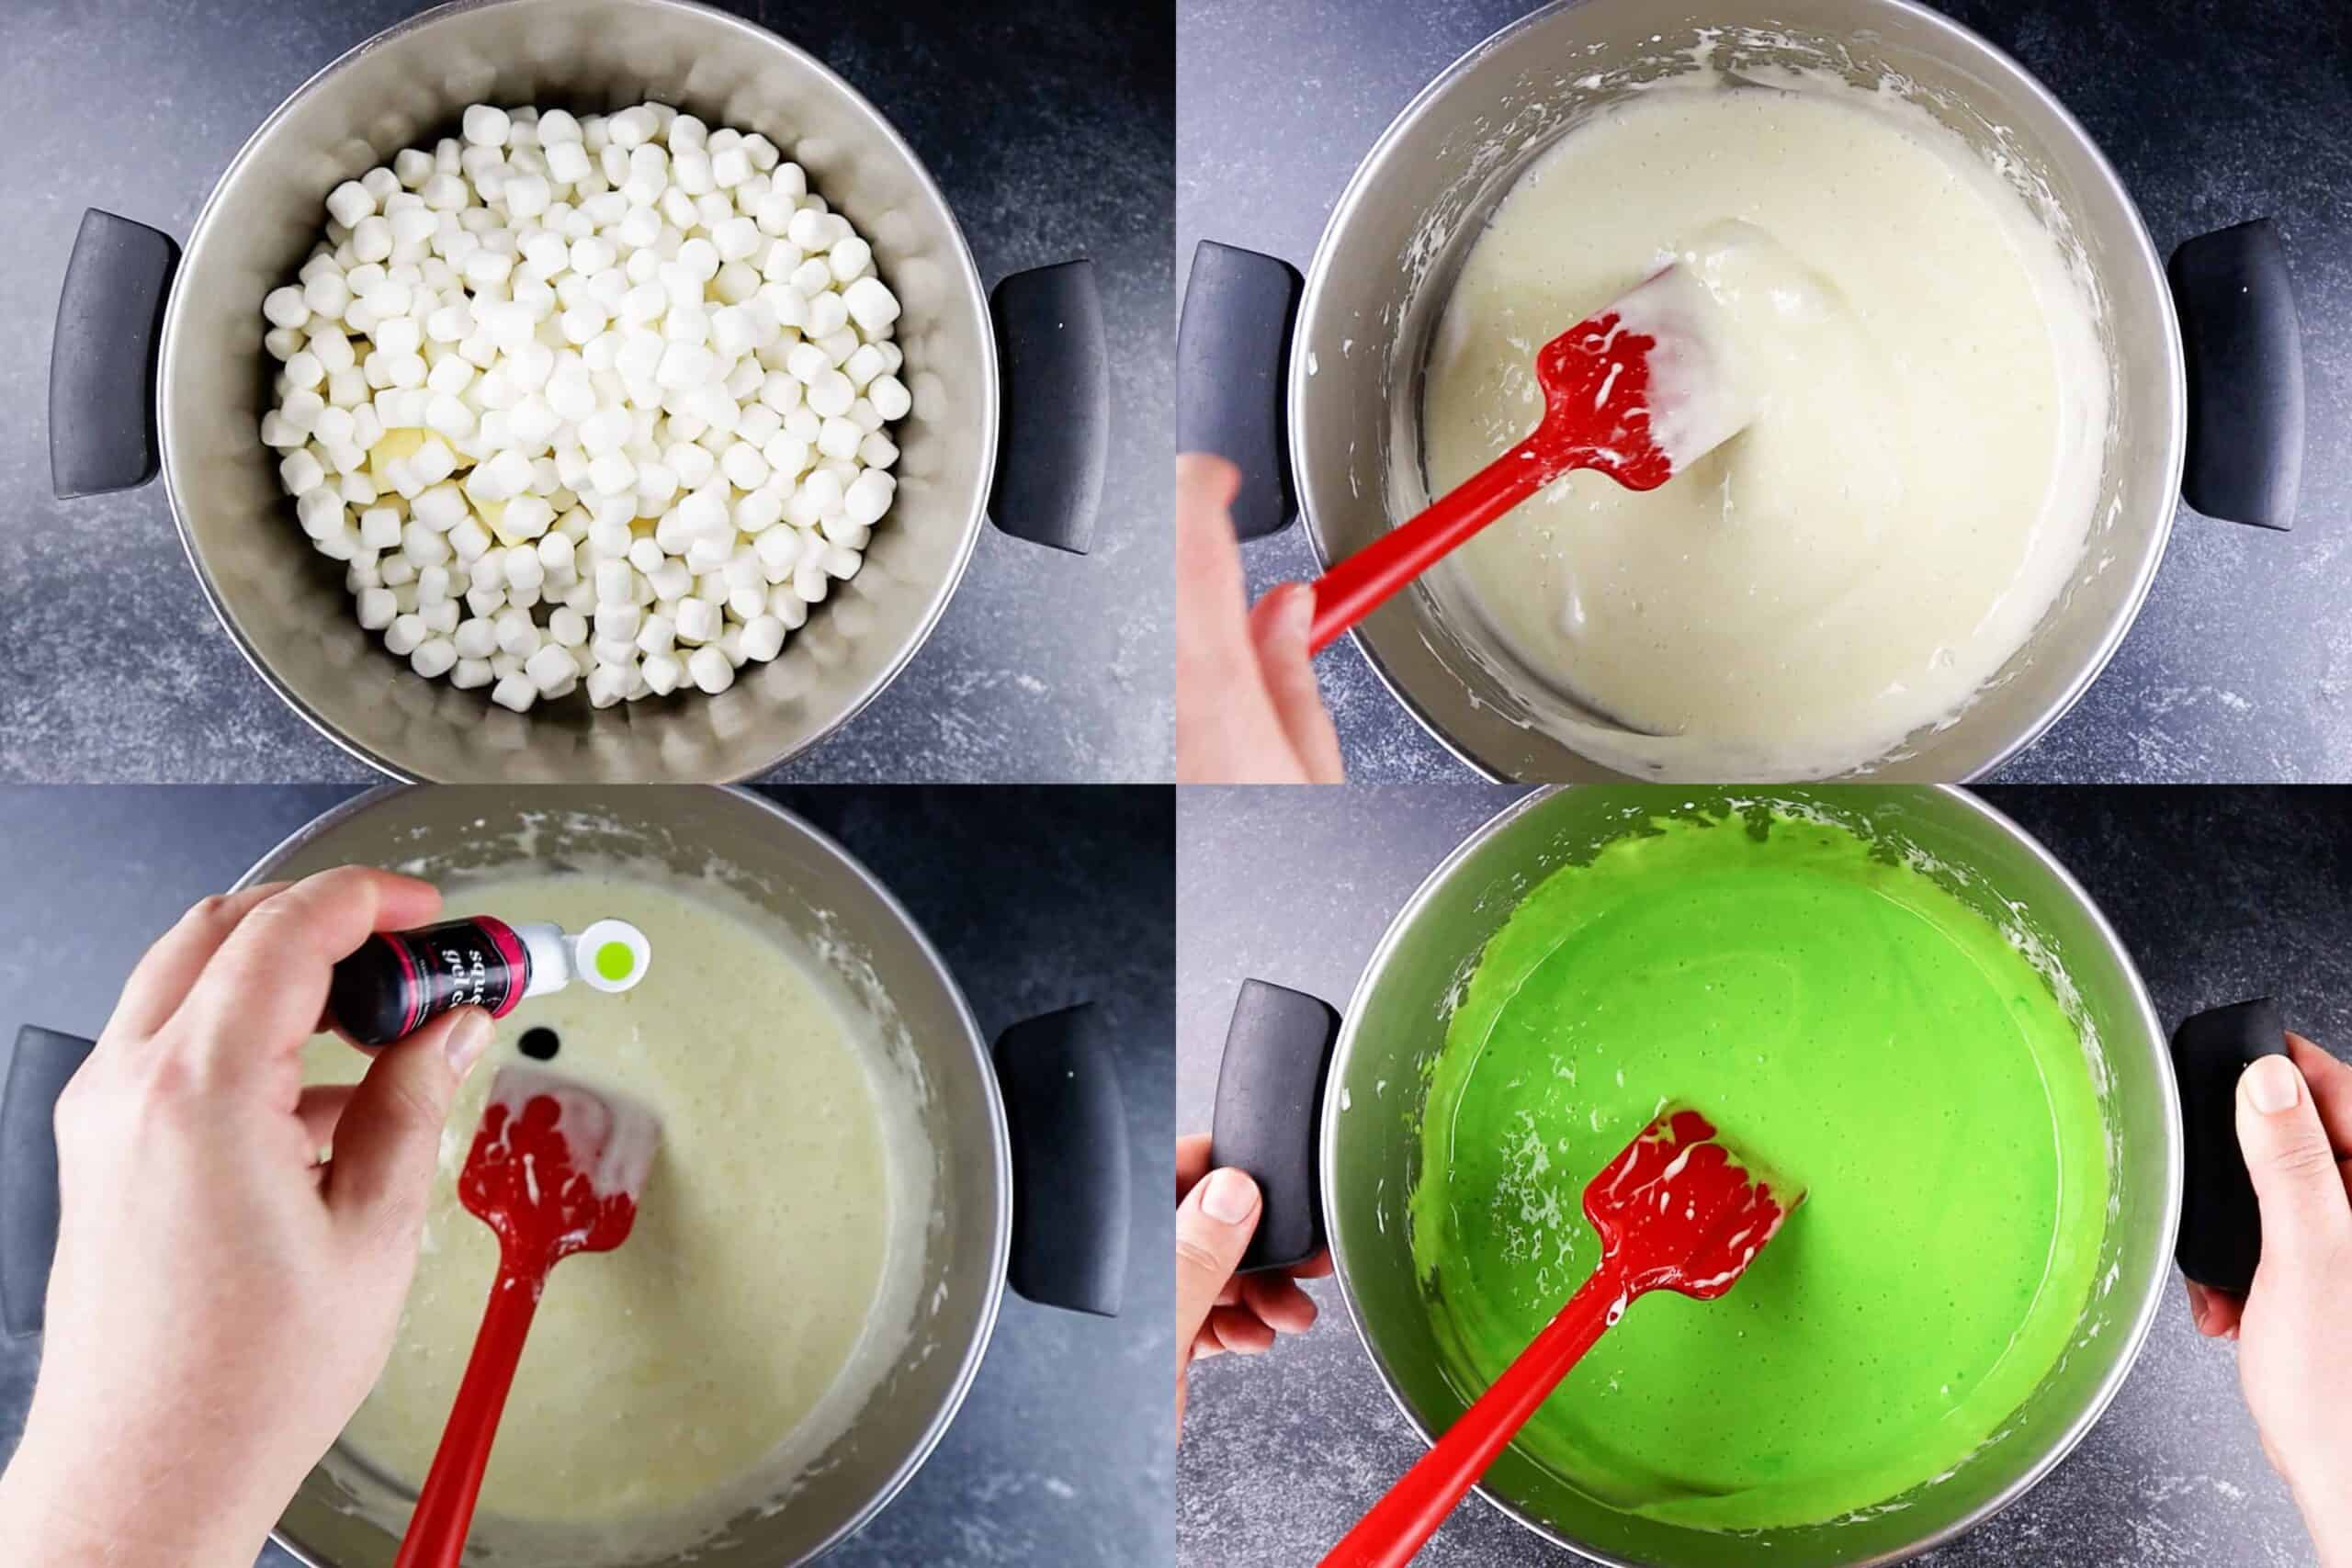 melting marshmallow and butter and mixing in green food coloring